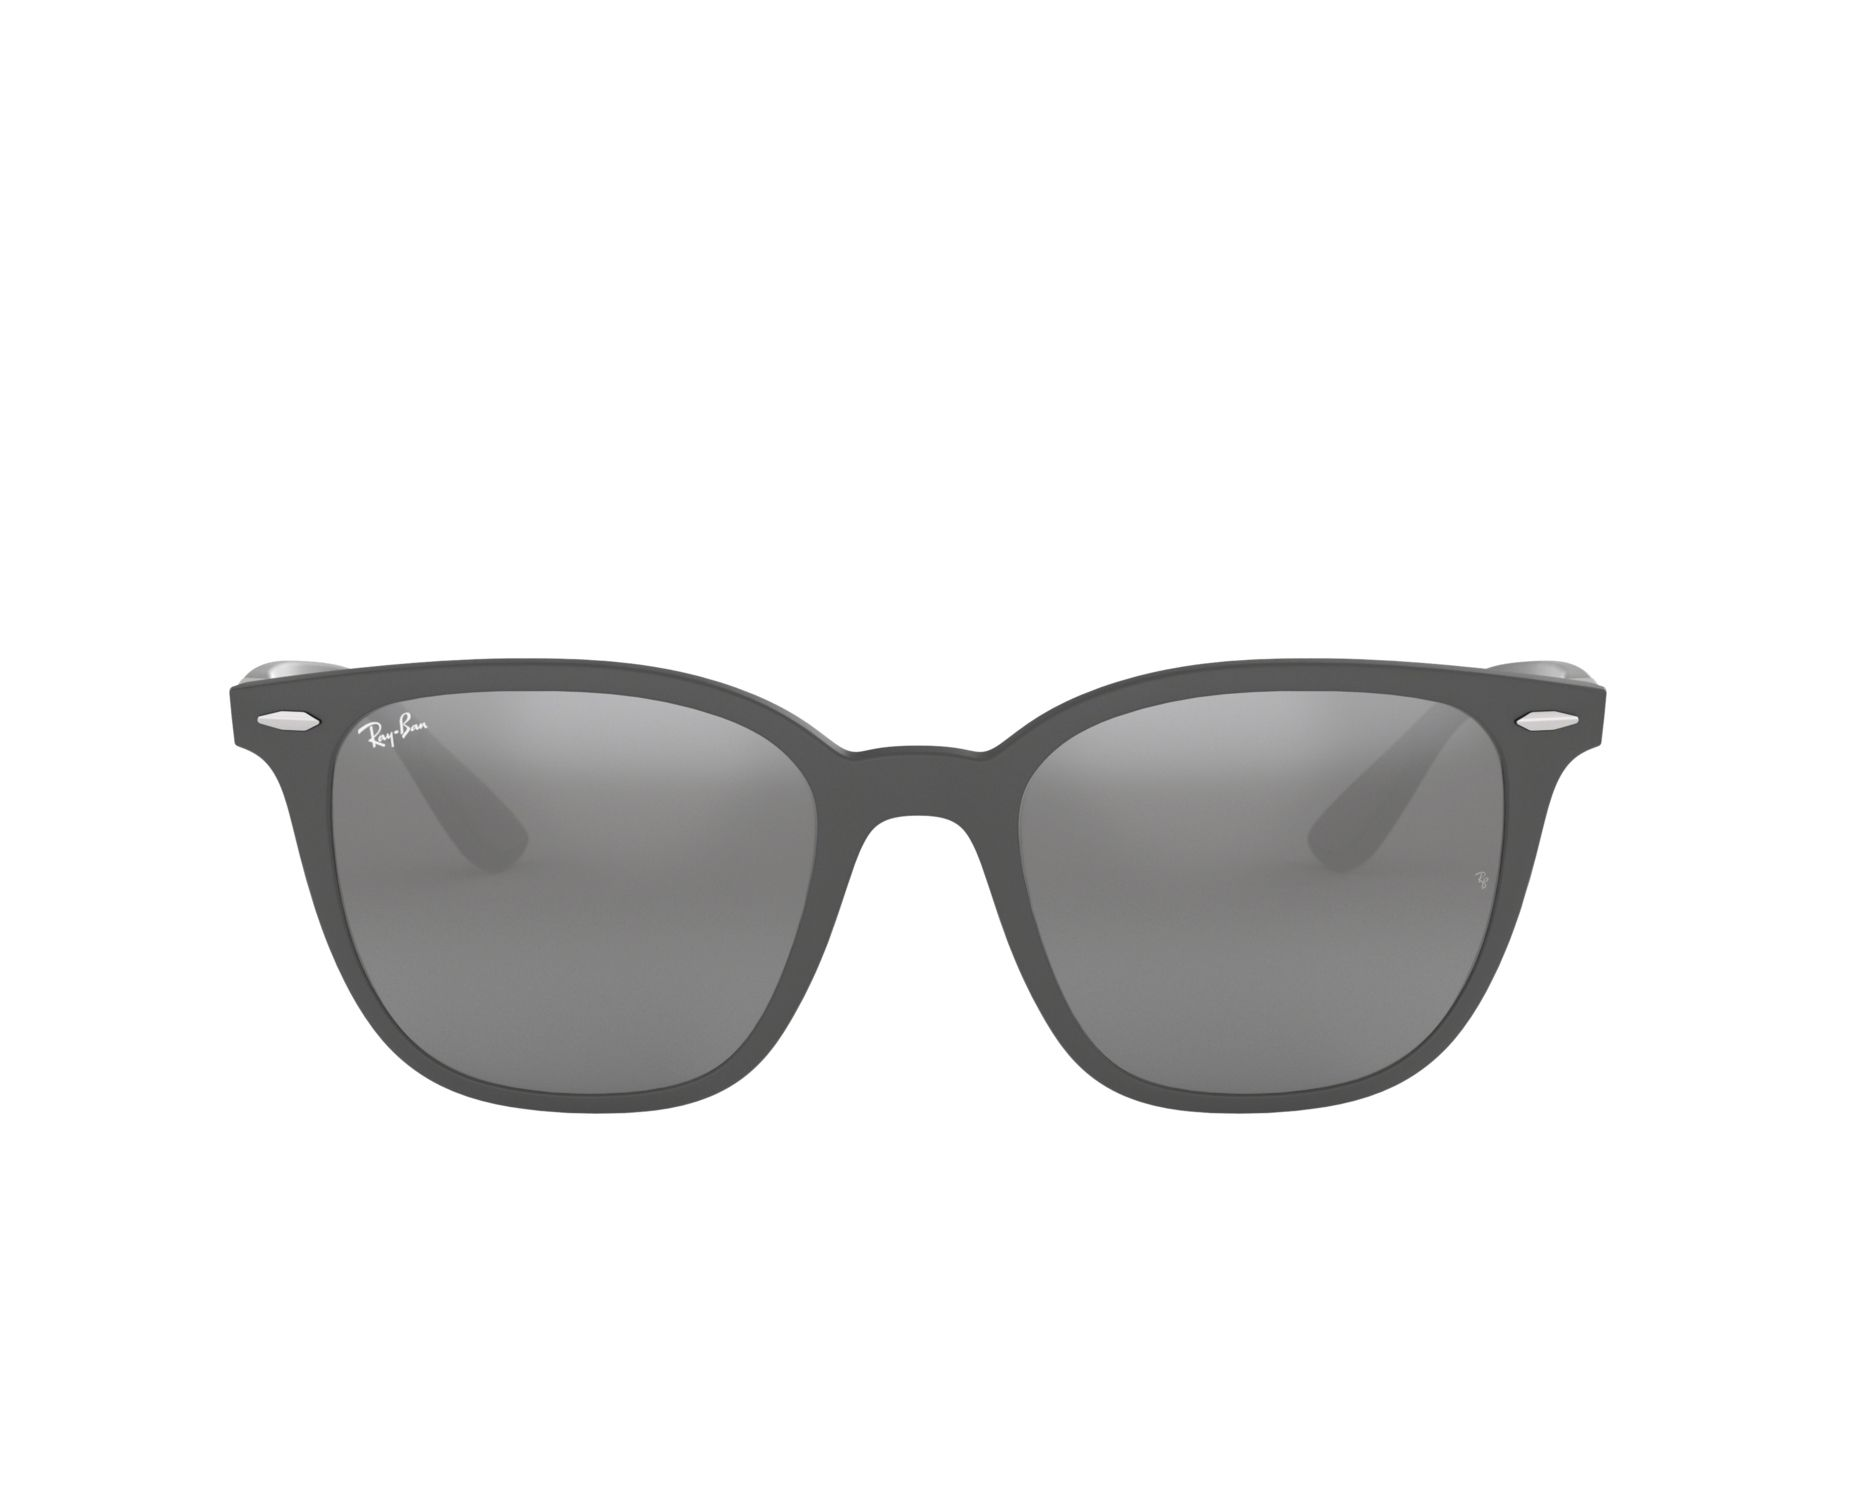 ae1faa6d0d Sunglasses Ray-Ban RB-4297 633288 51-19 Grey 360 degree view 1